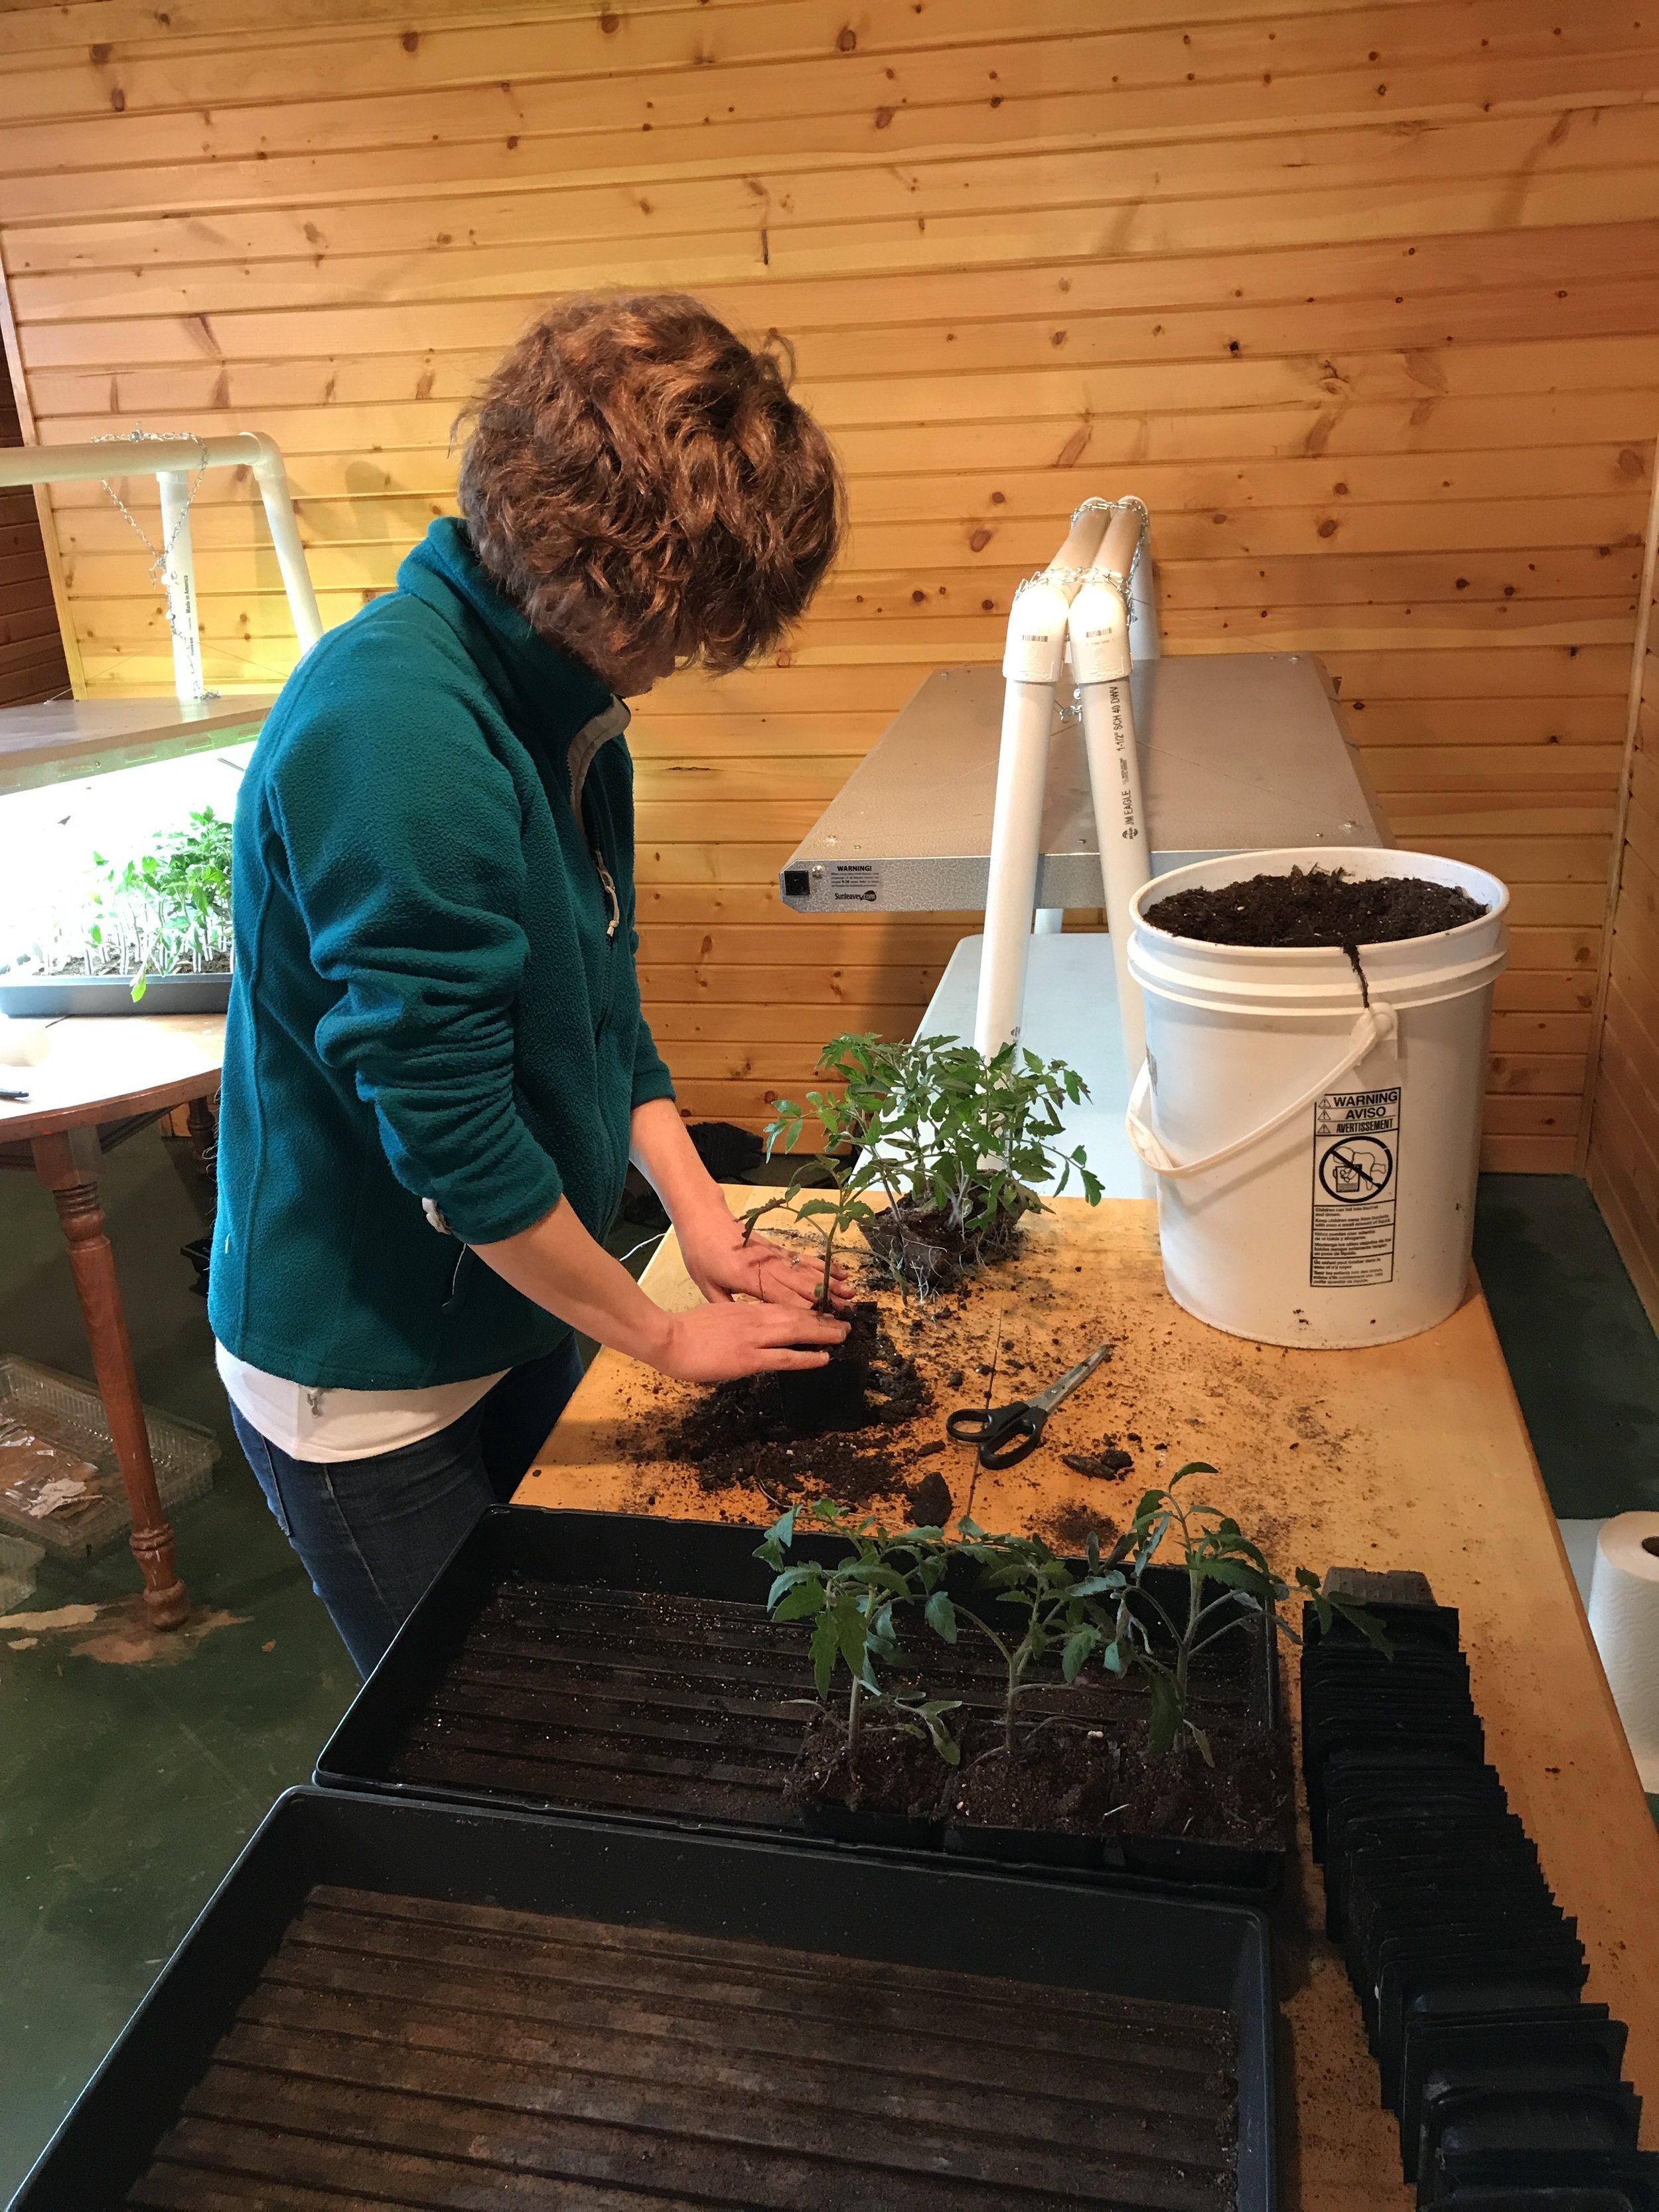 Lara is working on re-potting tomatoes in this picture. Our transplants have grown too large for their pots so we move them to larger pots since it's too early to plant them outdoors.